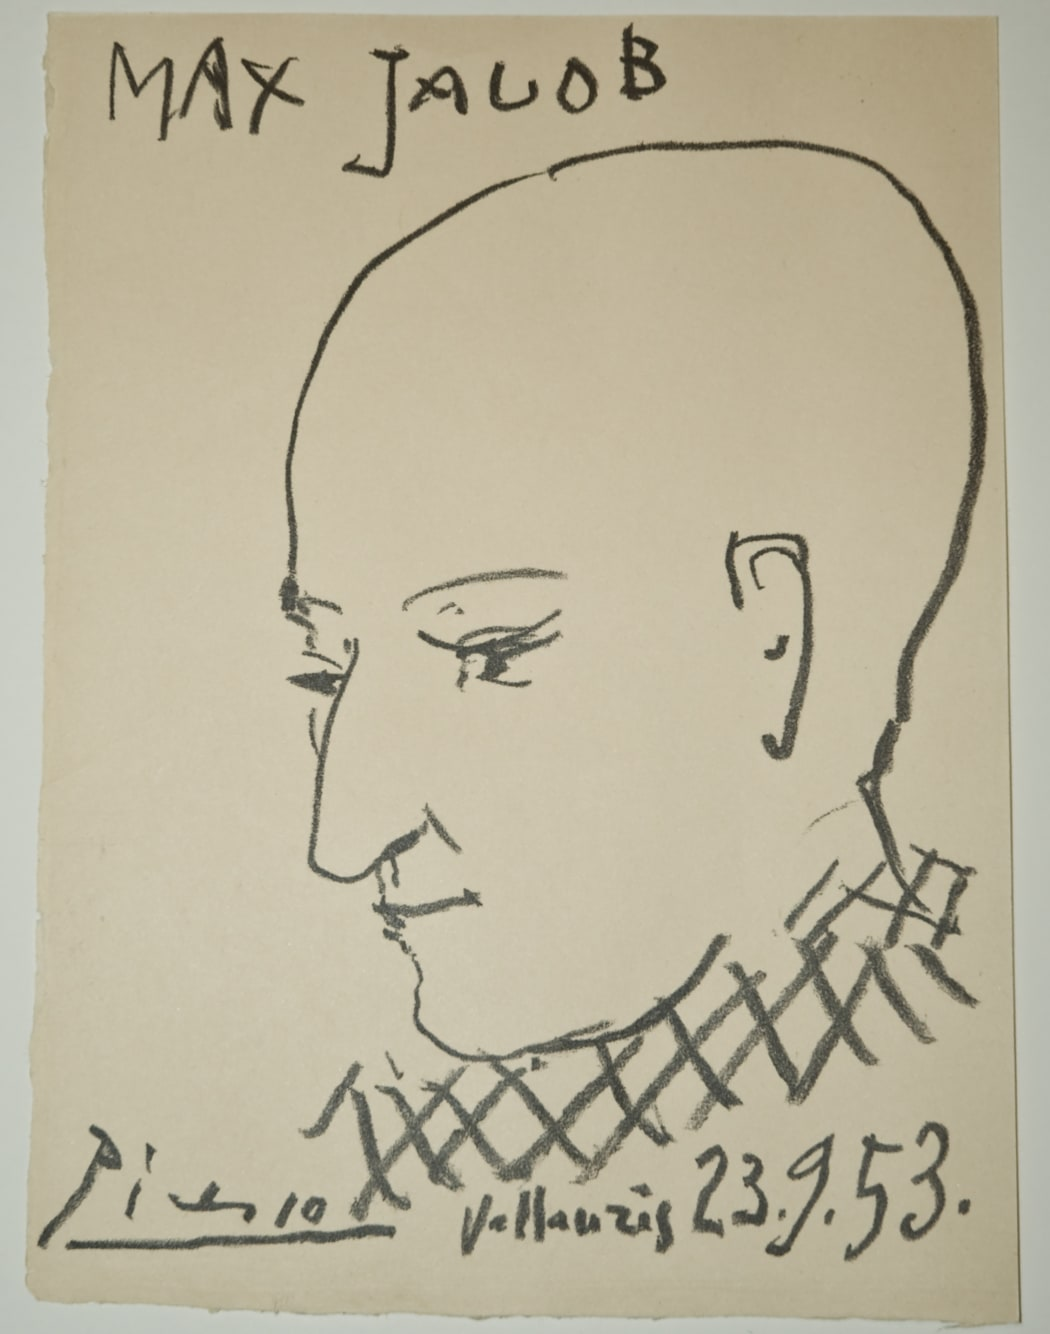 Portrait de Max Jacob, 1953, transfer lithograph, 9 1/2 x 7 1/8 inches